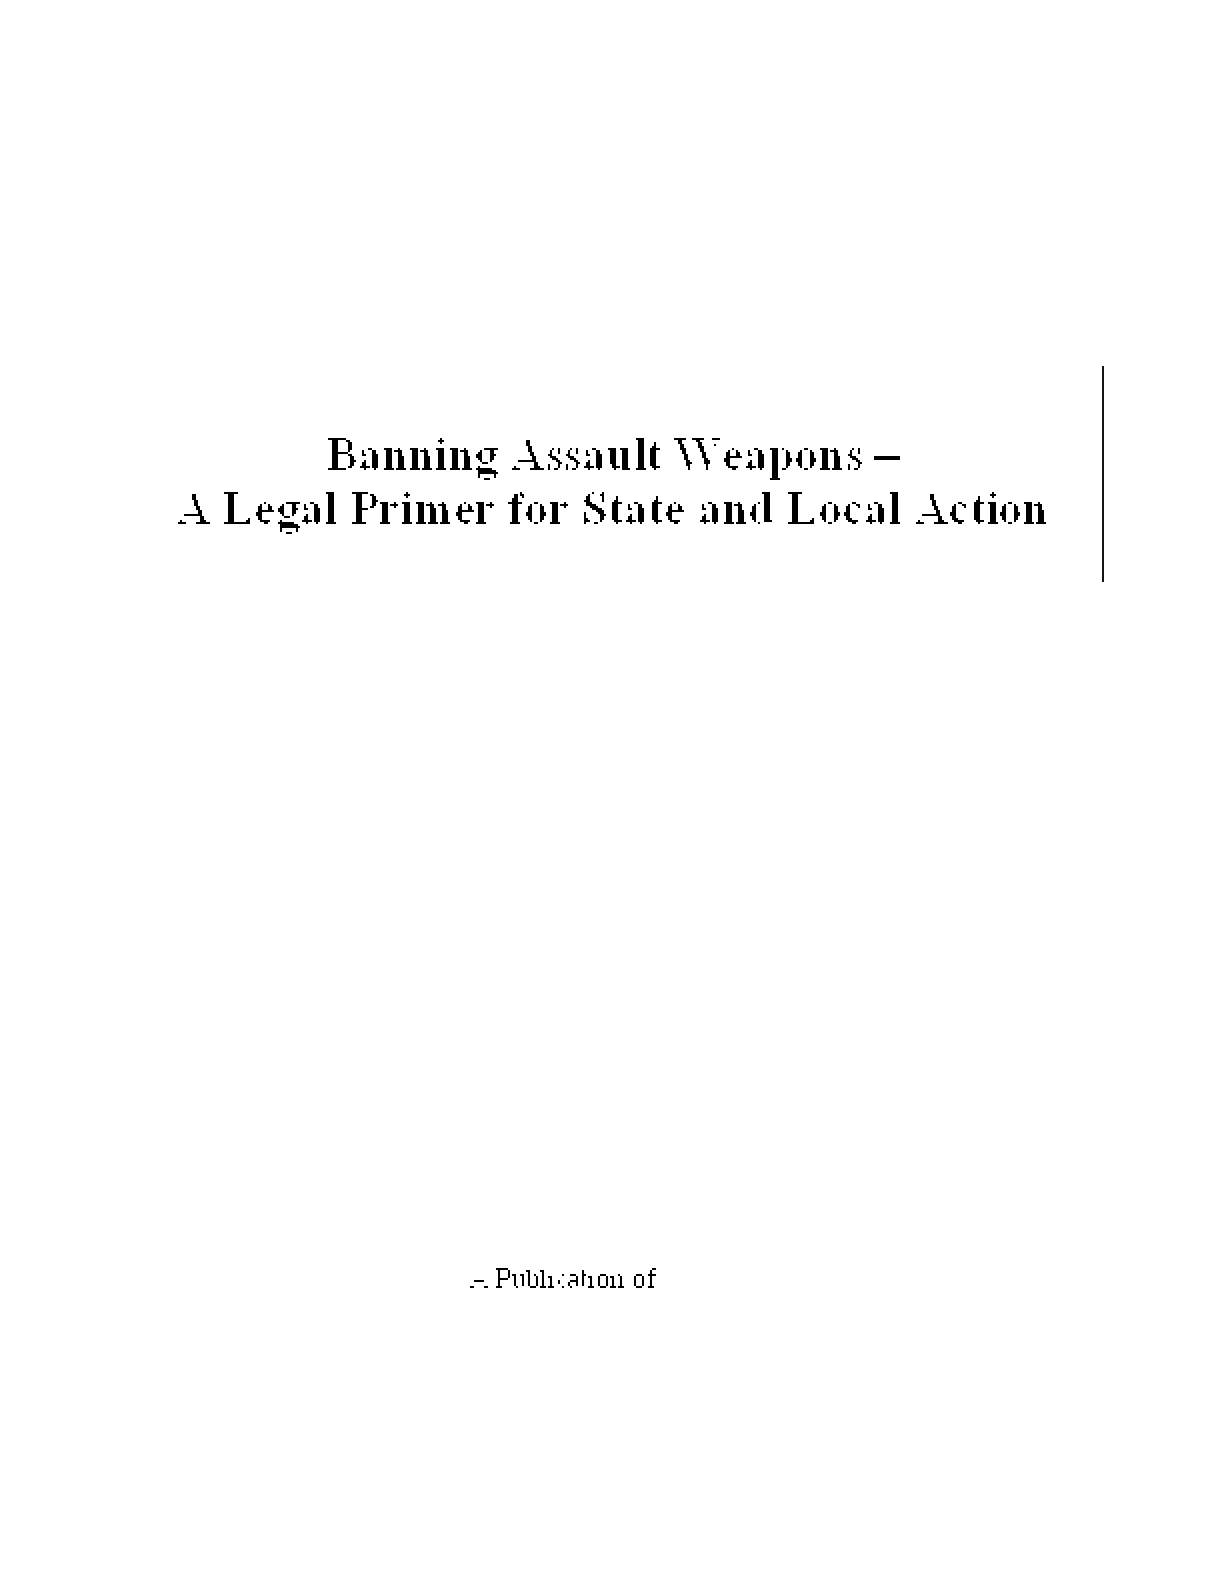 Banning Assault Weapons -- A Legal Primer for State and Local Action